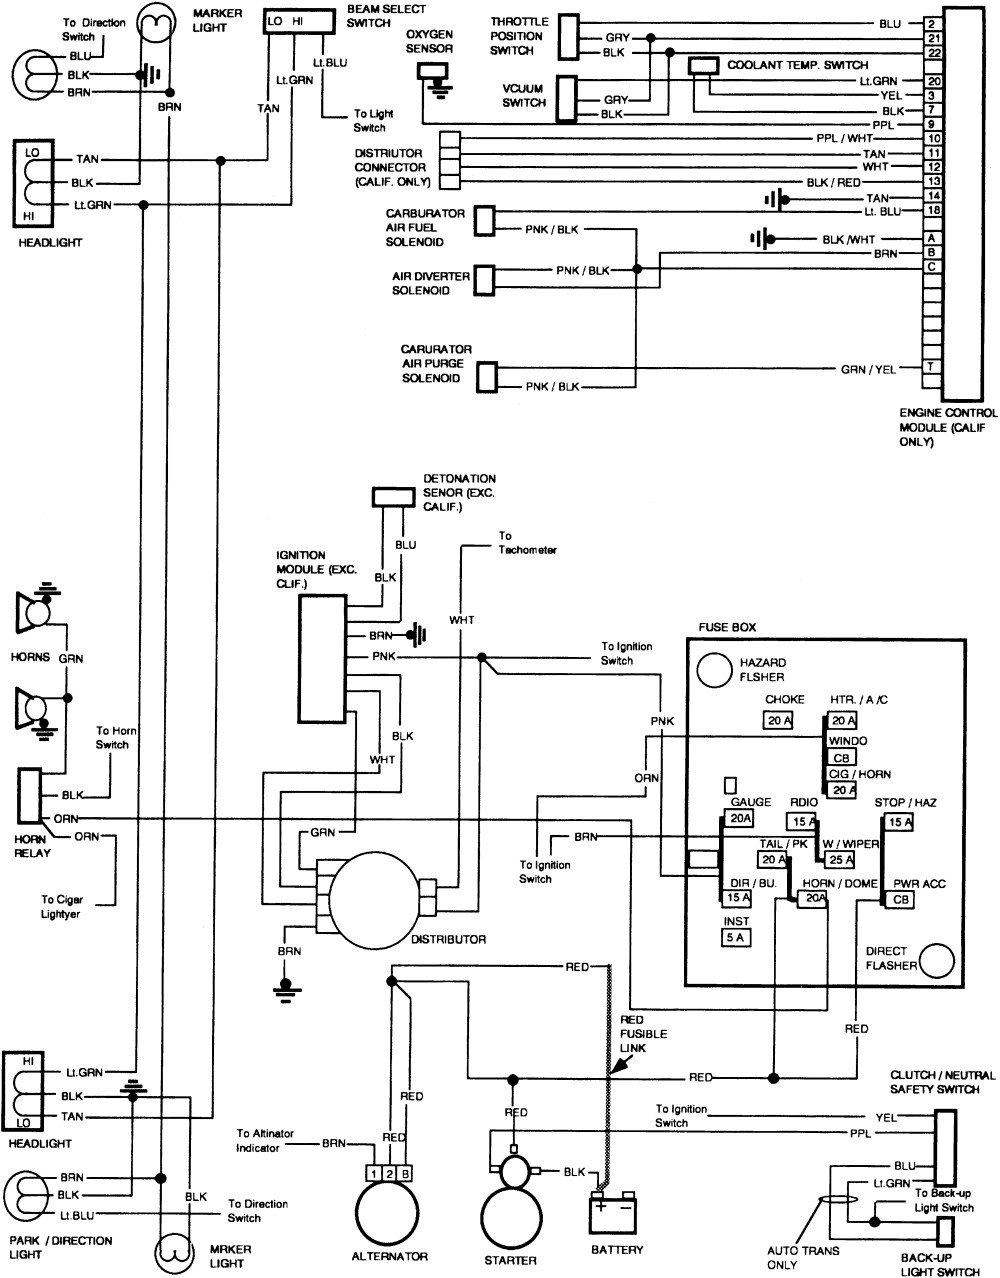 1985 chevrolet wiring diagram -1992 saturn engine diagram | bege place wiring  diagram  bege place wiring diagram